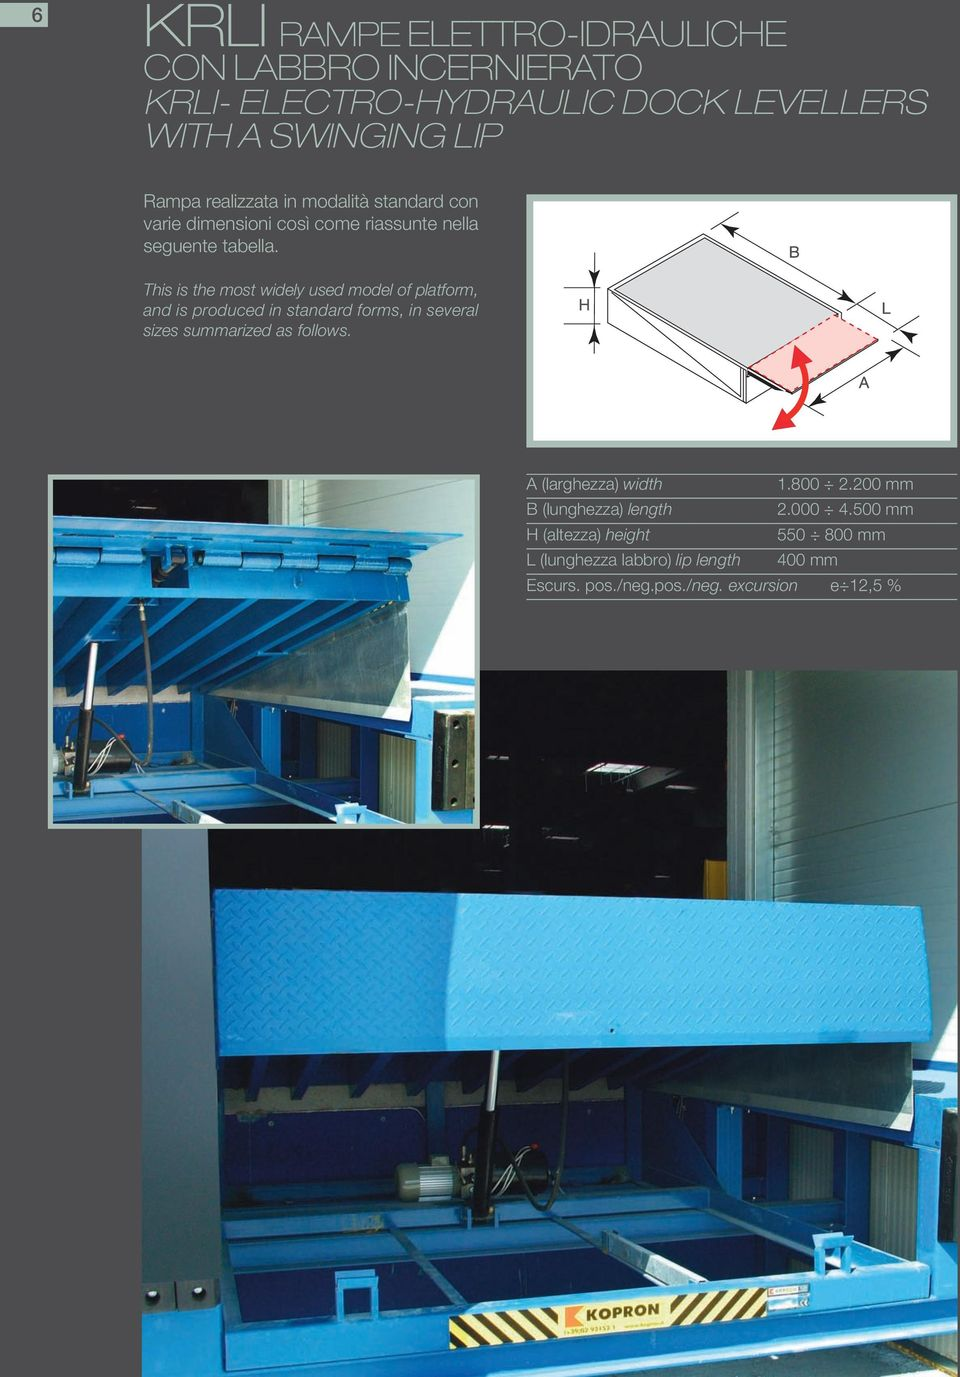 B This is the most widely used model of platform, and is produced in standard forms, in several sizes summarized as follows.